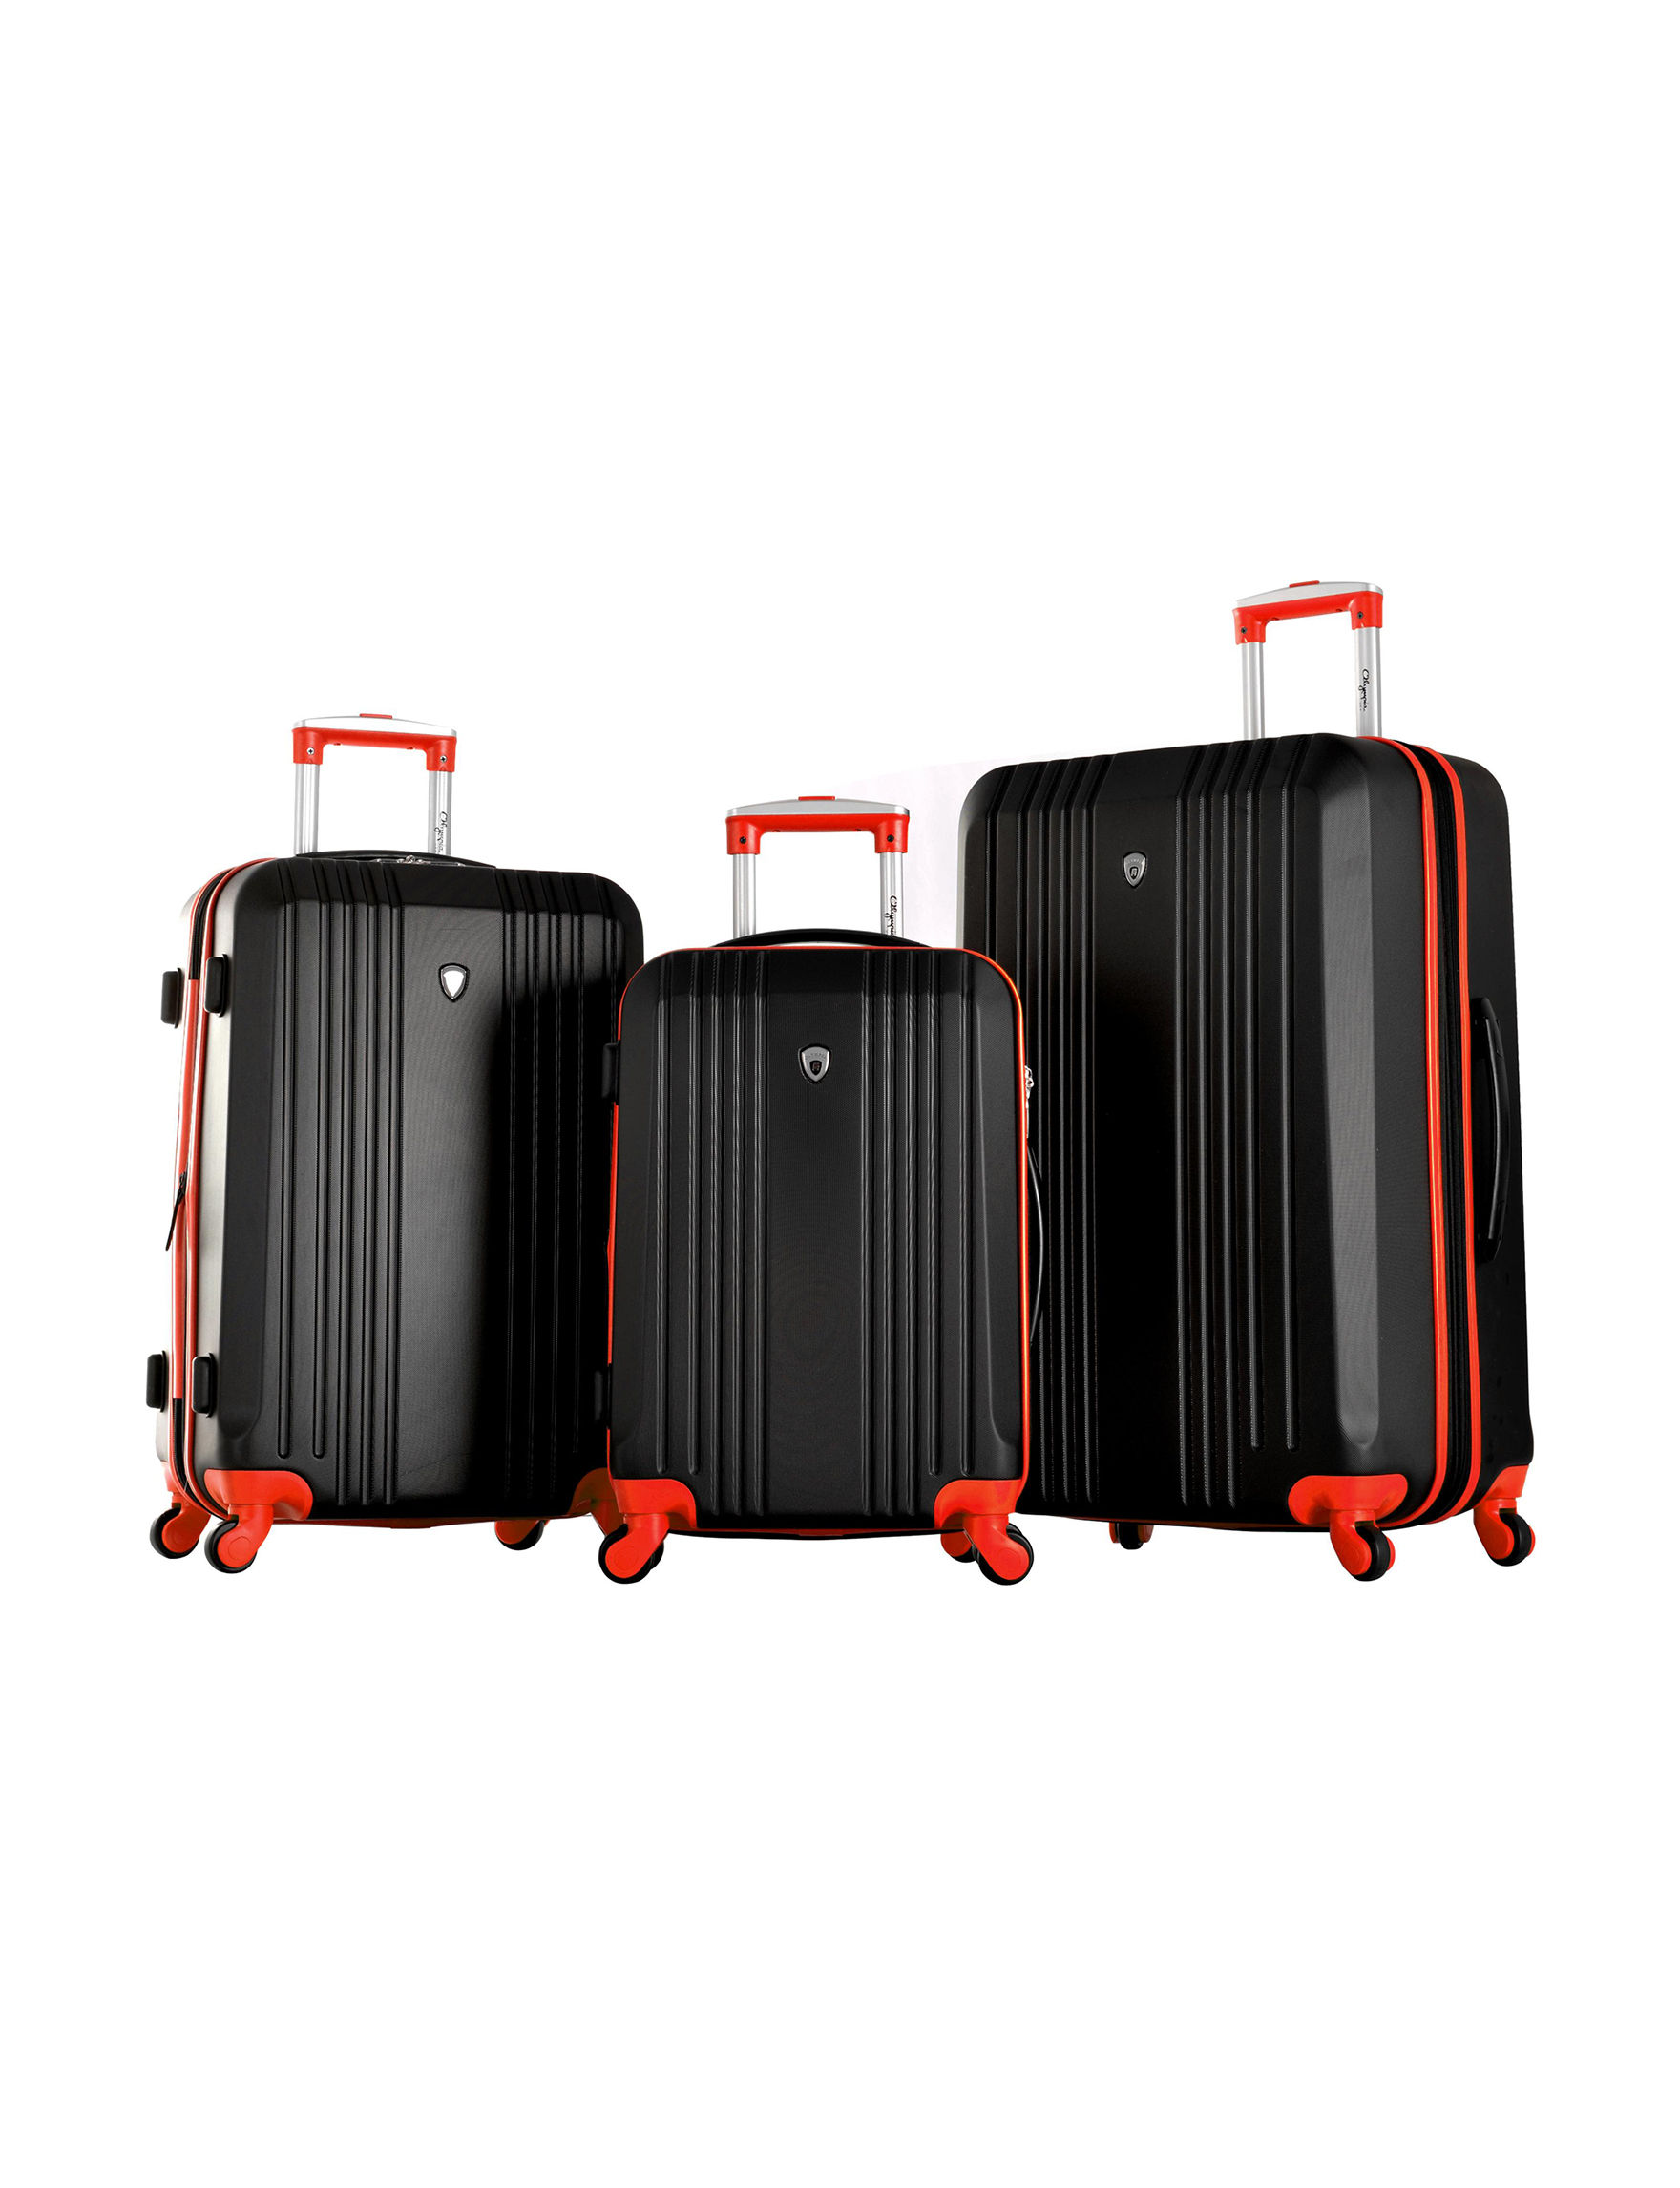 Olympia USA Black / Red Luggage Sets